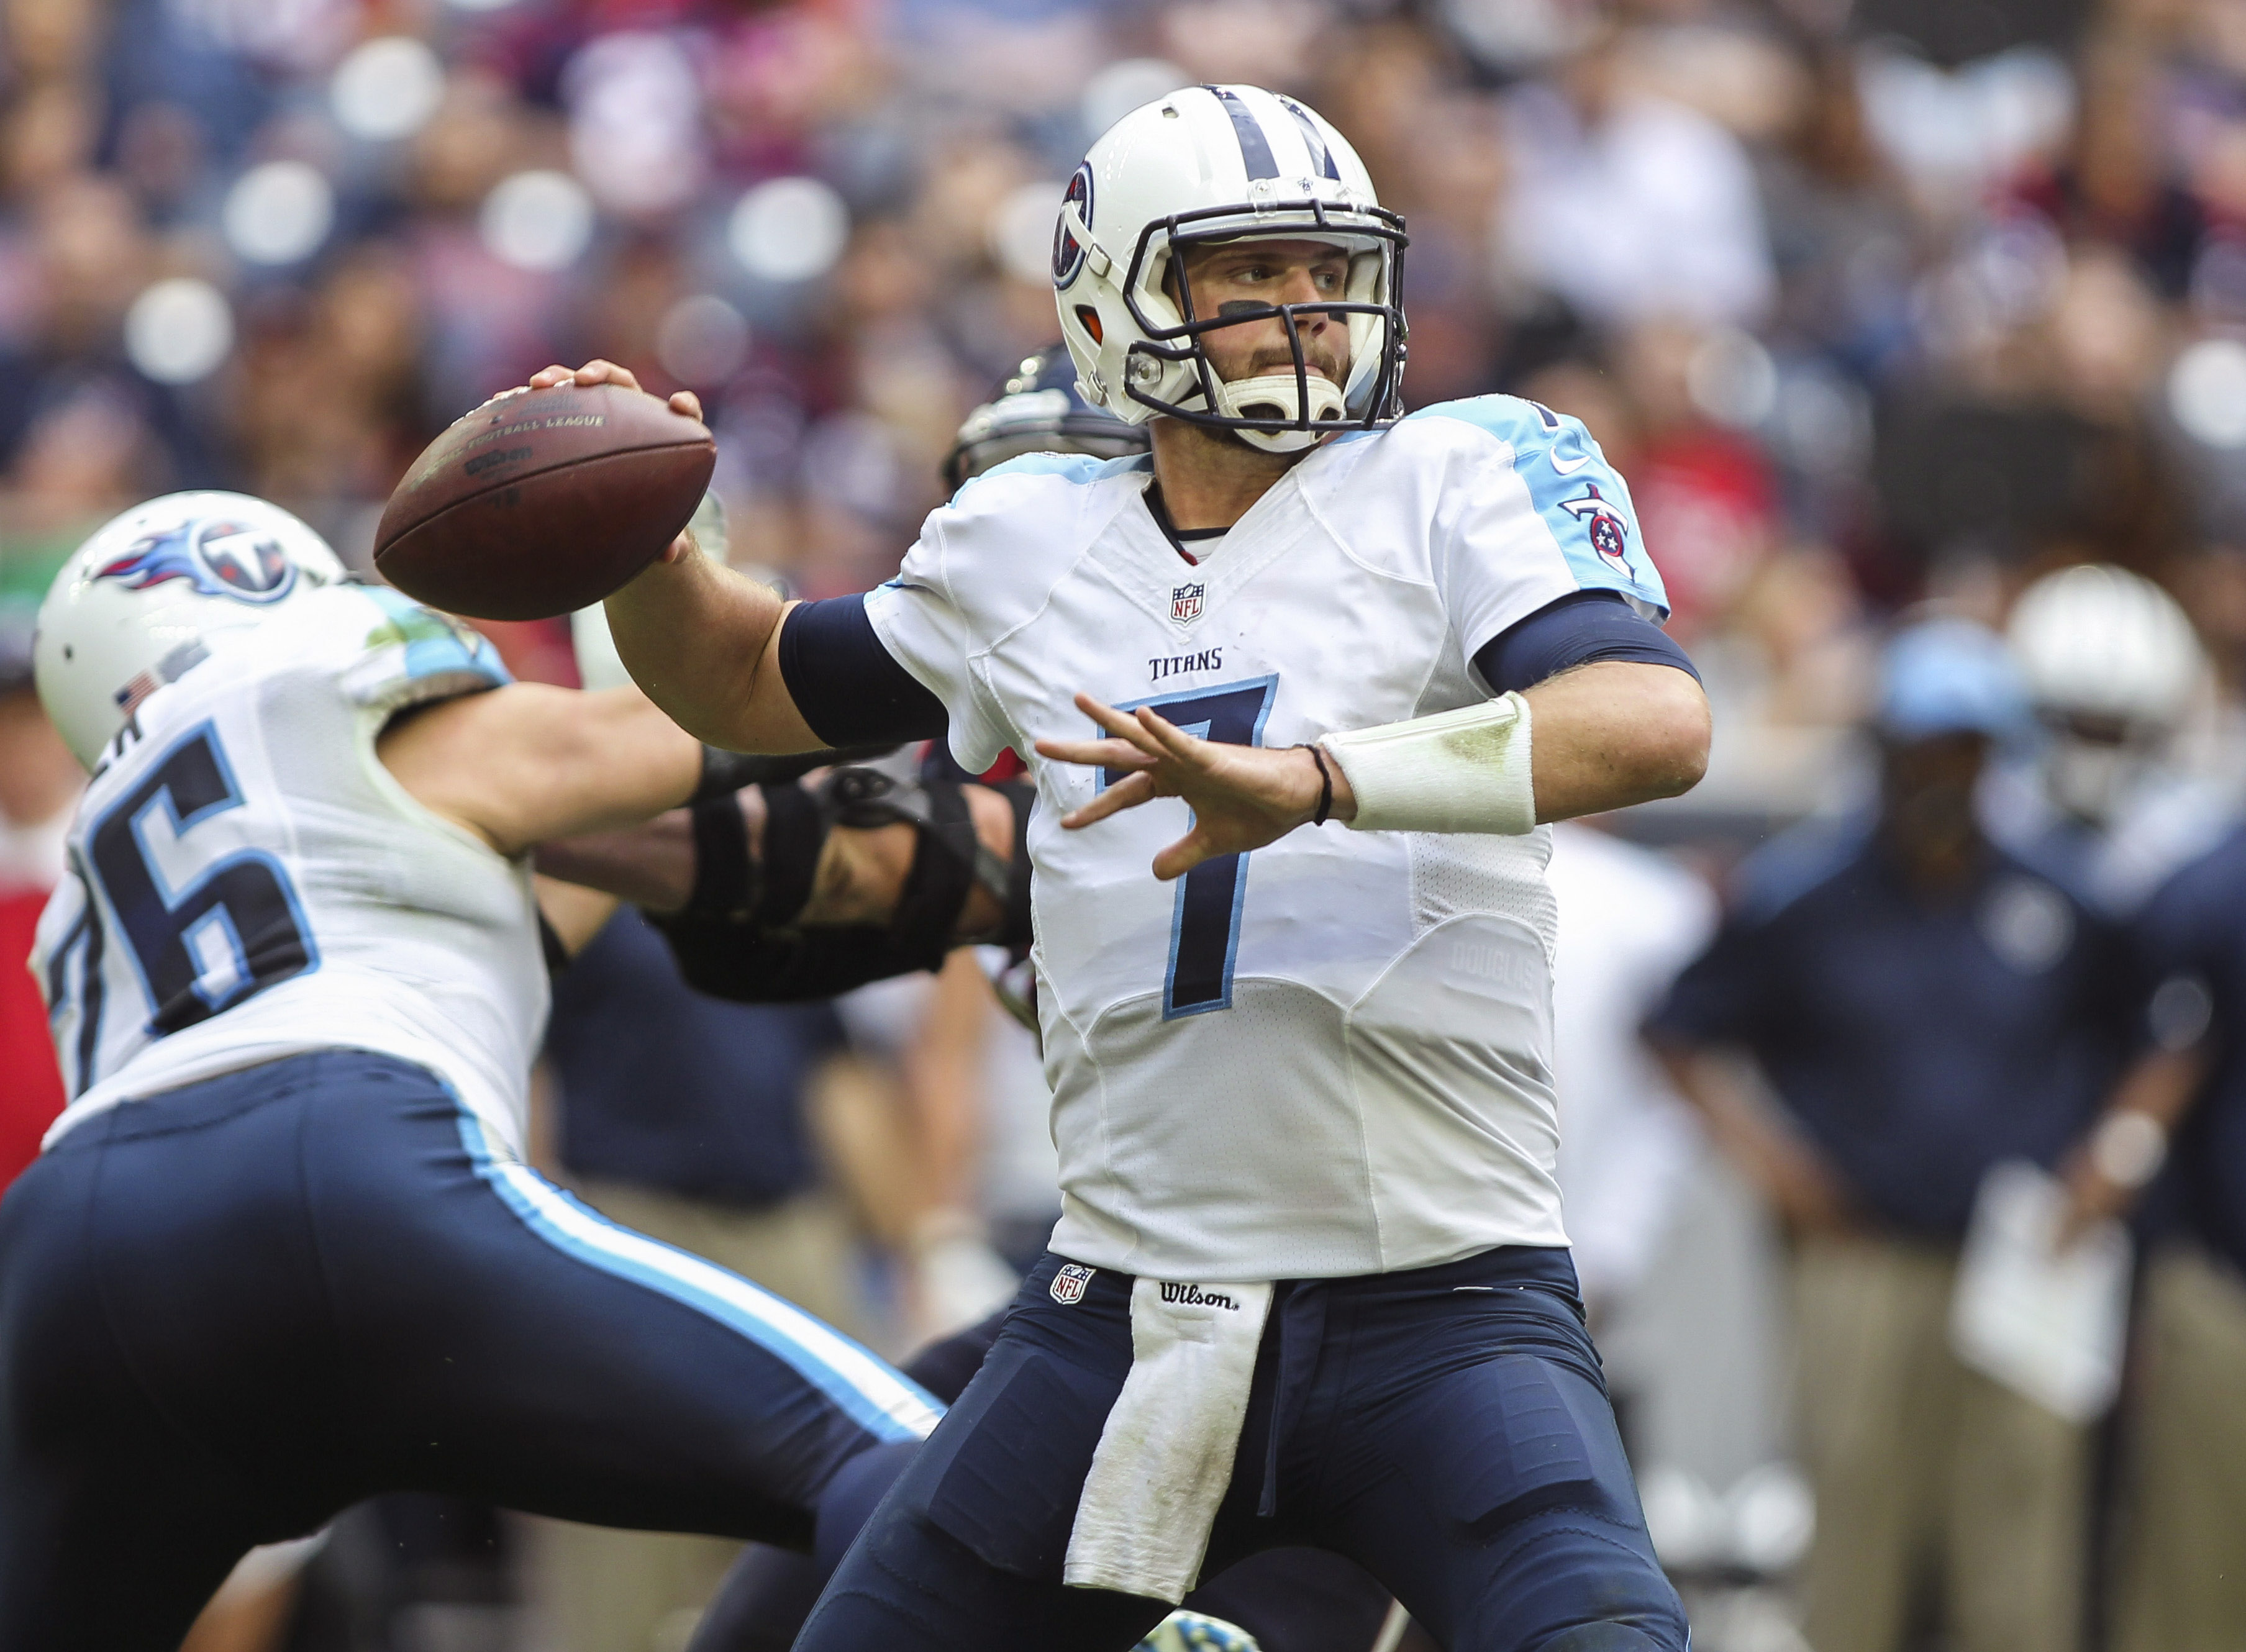 Zach Mettenberger 'likely' out for the season, per report